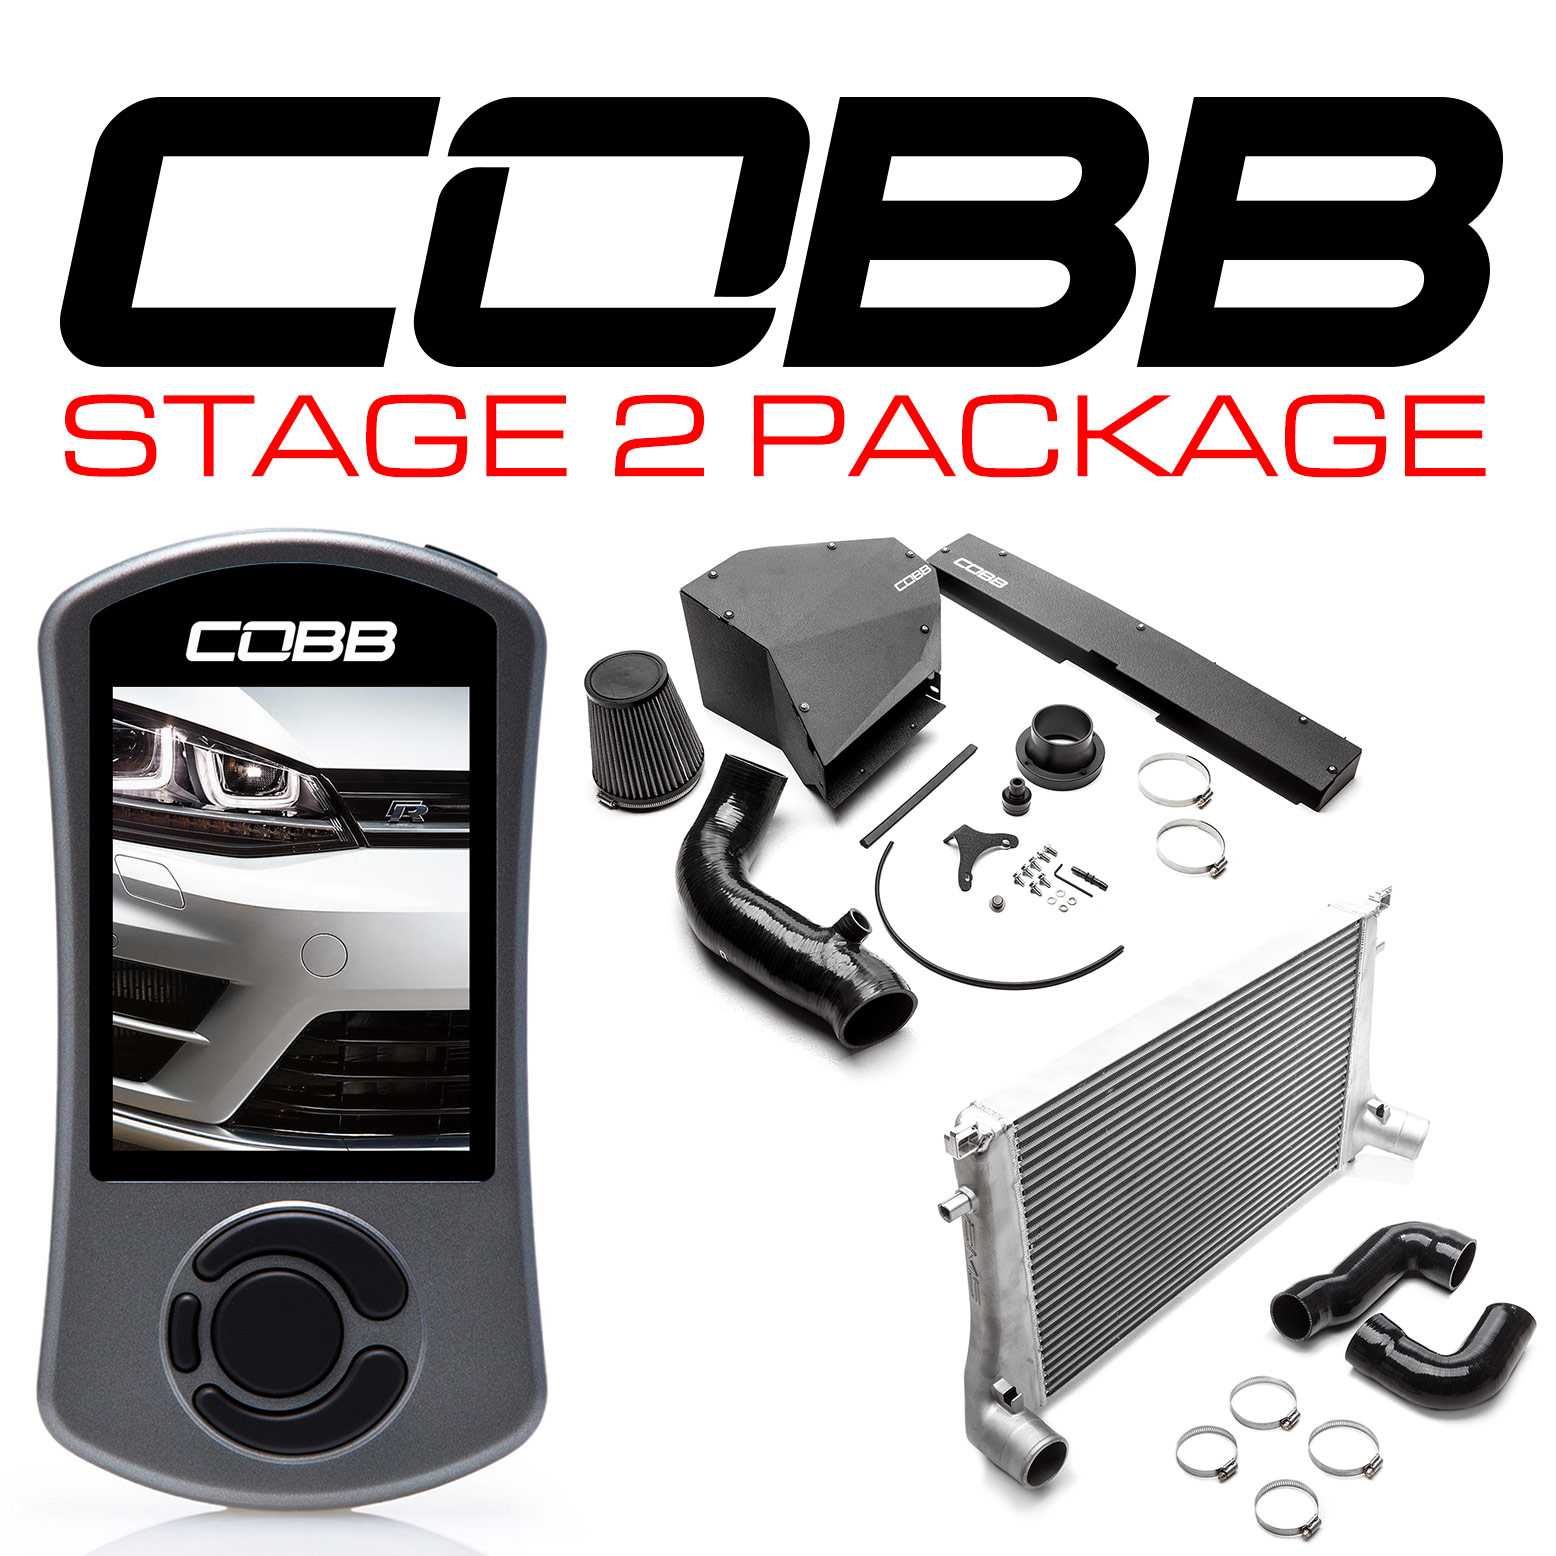 Stage Power Packages